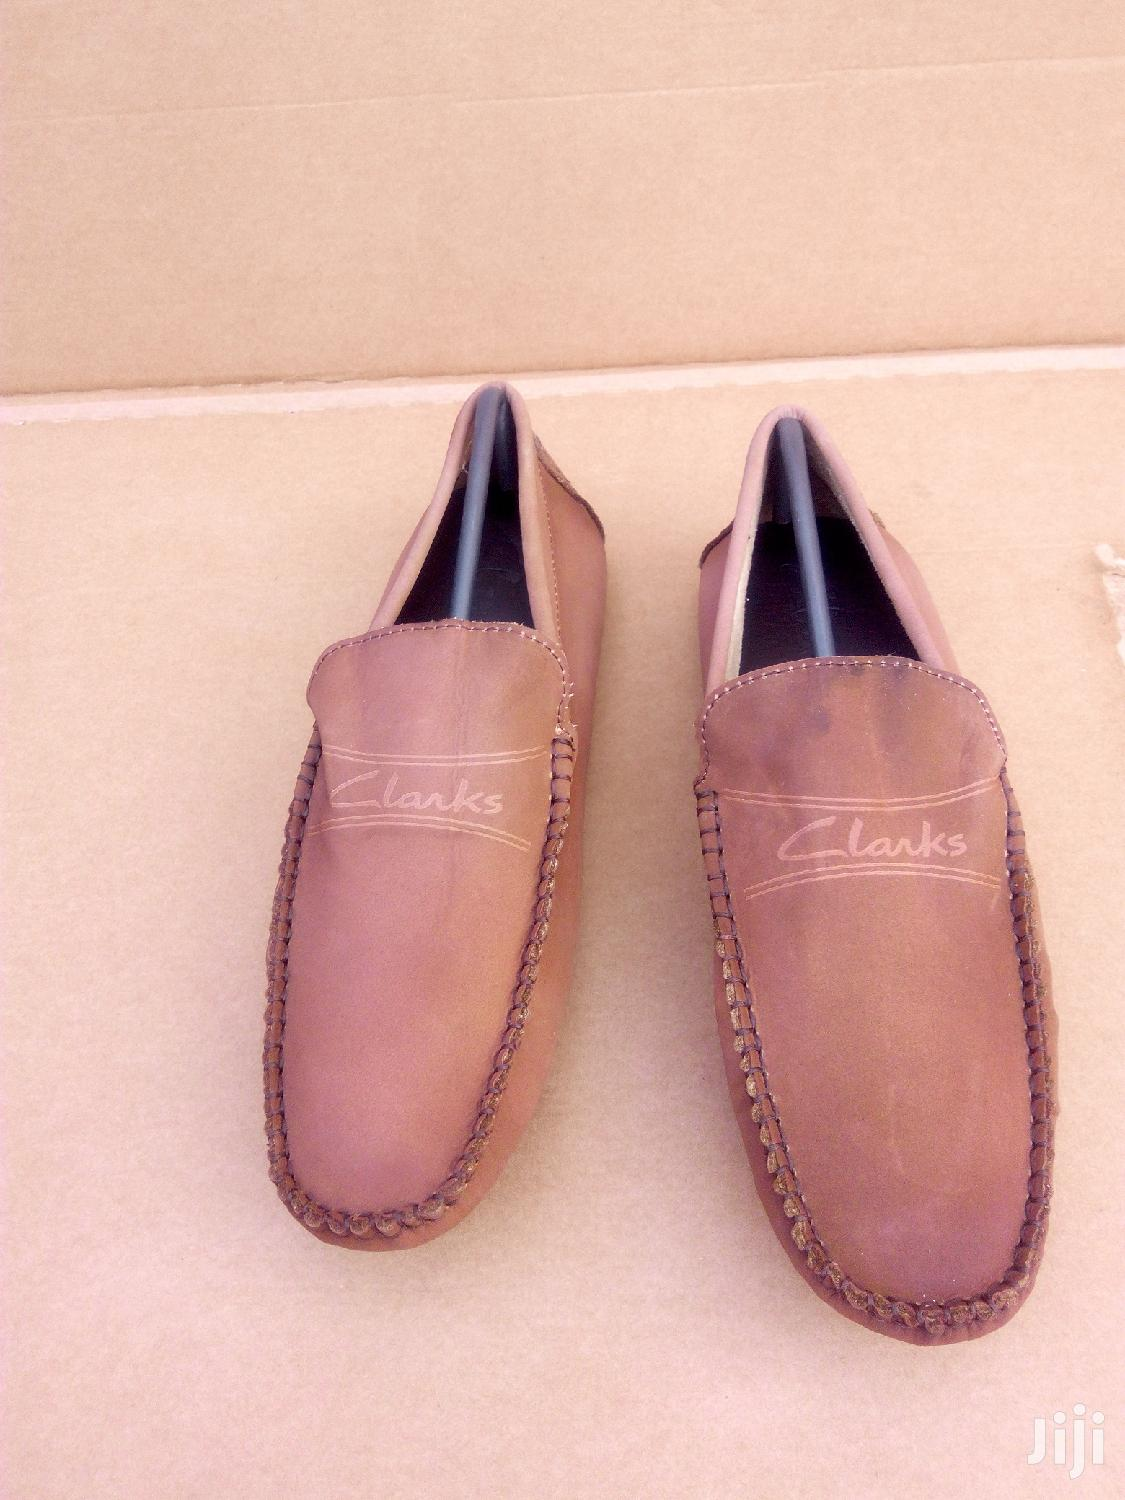 Clarks Loafers(Faded Brown)